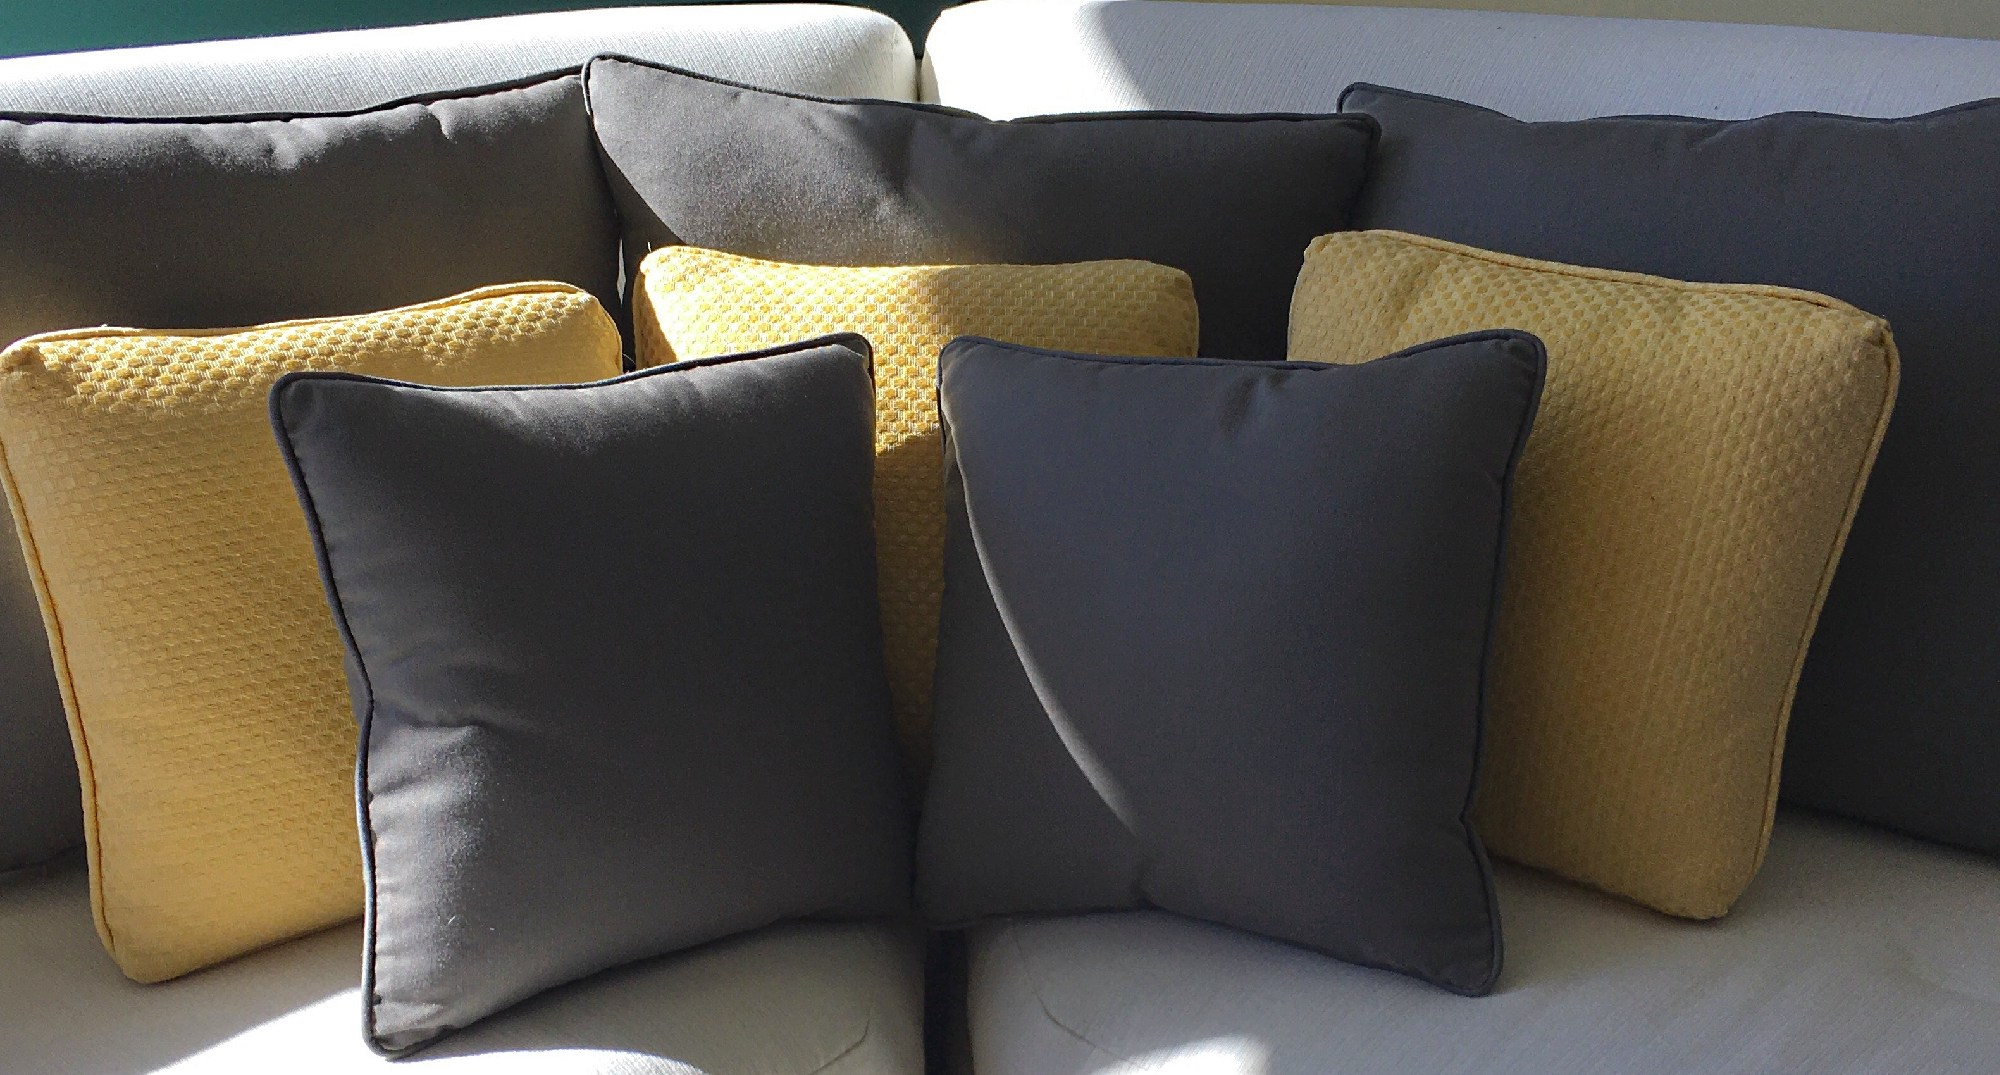 Throw cushions to finish off your décor.